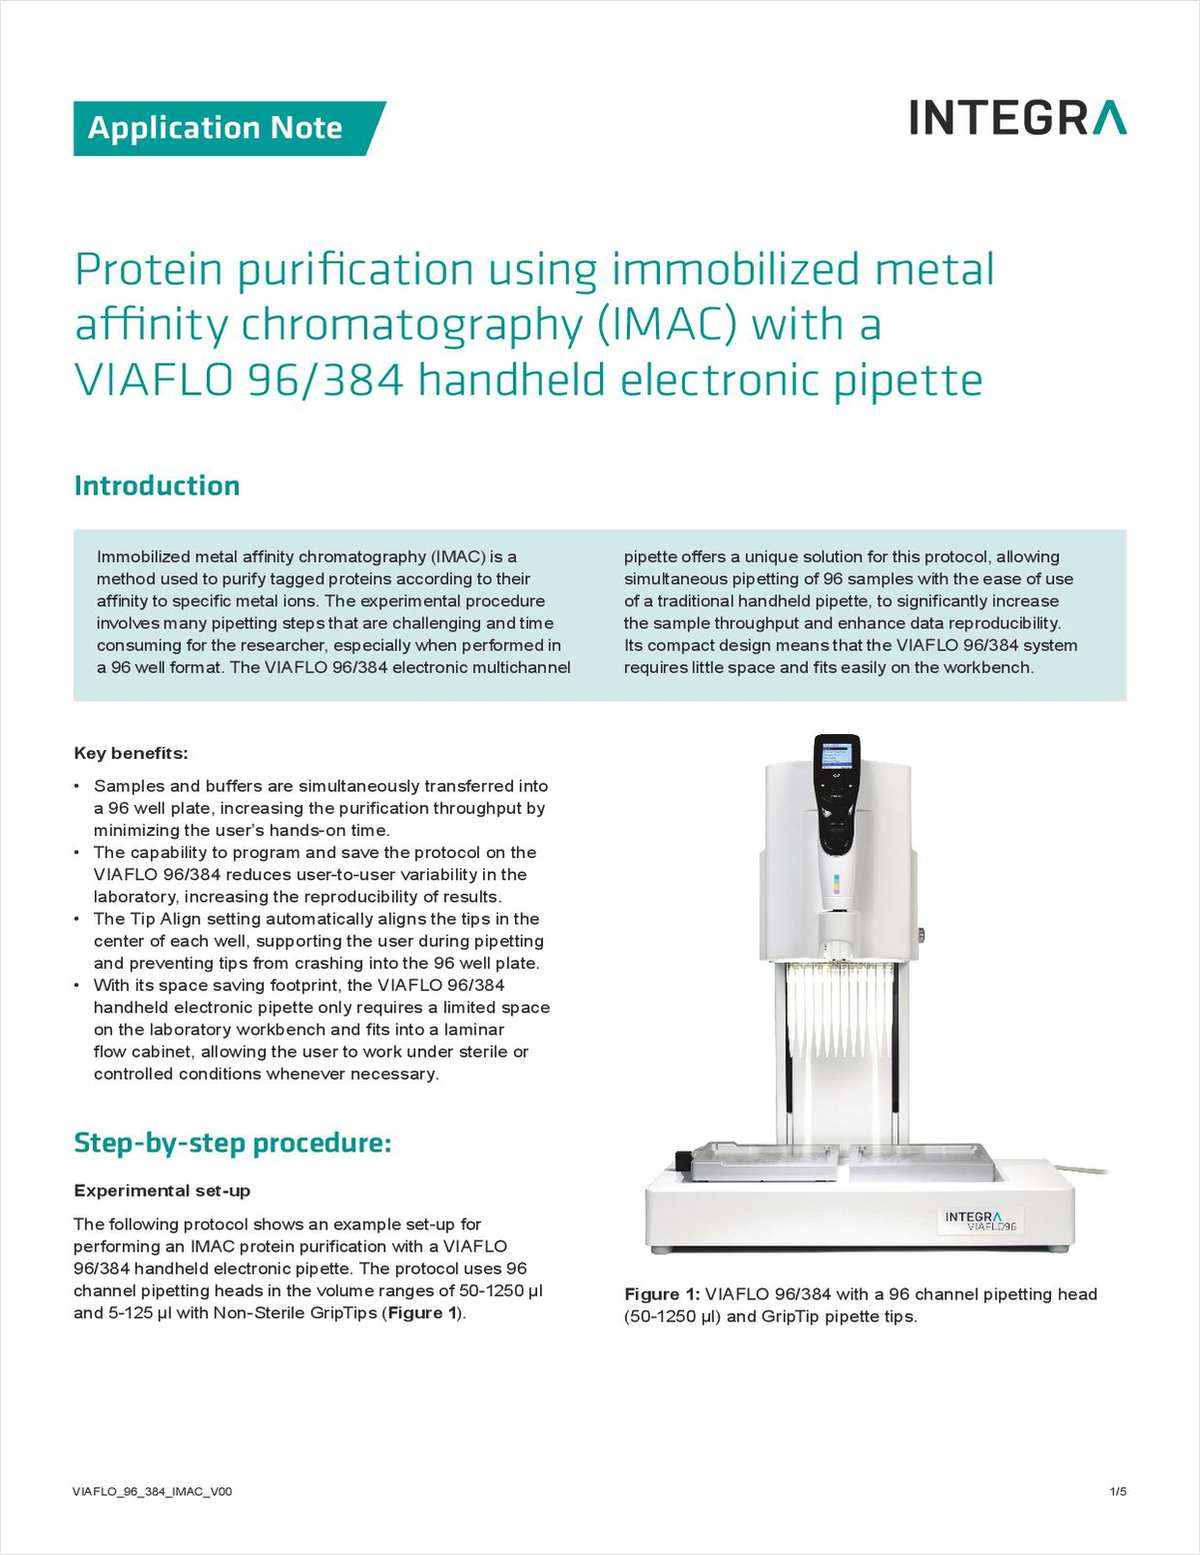 Protein Purification Using Immobilized Metal Affinity Chromatography (IMAC) with a VIAFLO 96/384 Handheld Electronic Pipette